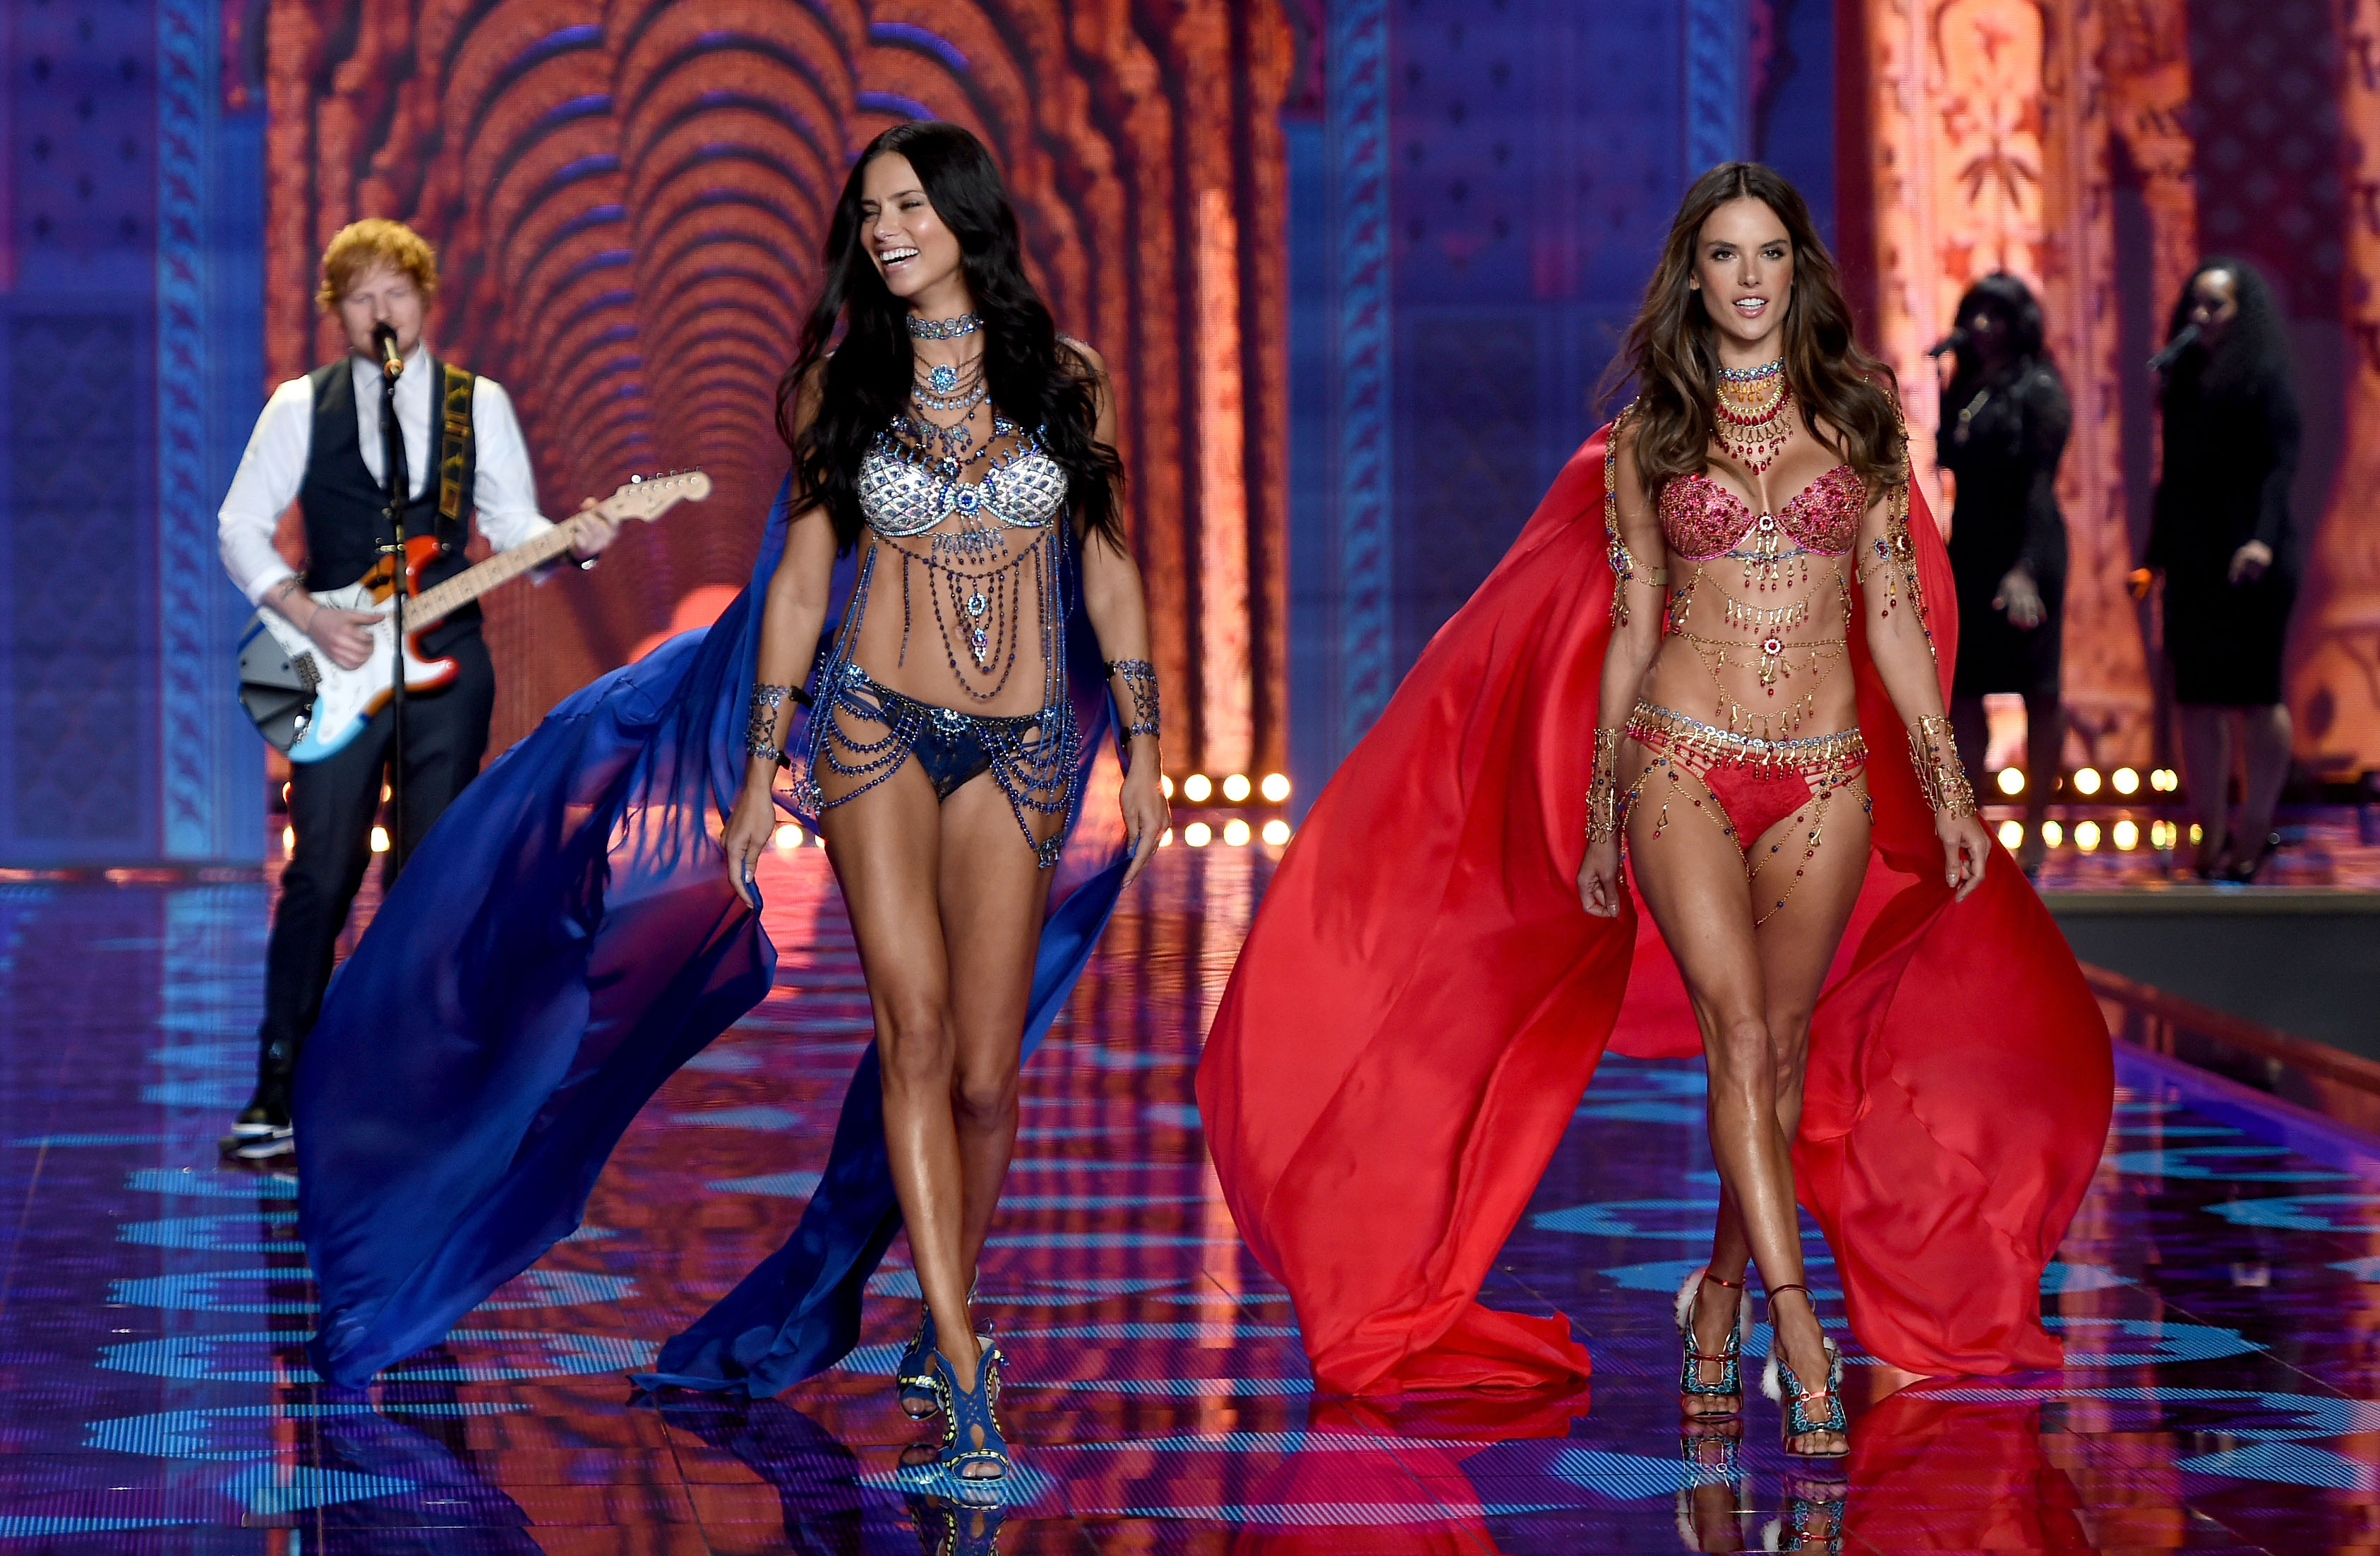 Victoria's Secret Fashion Show 2015 Performance Vs Fashion Show seen so